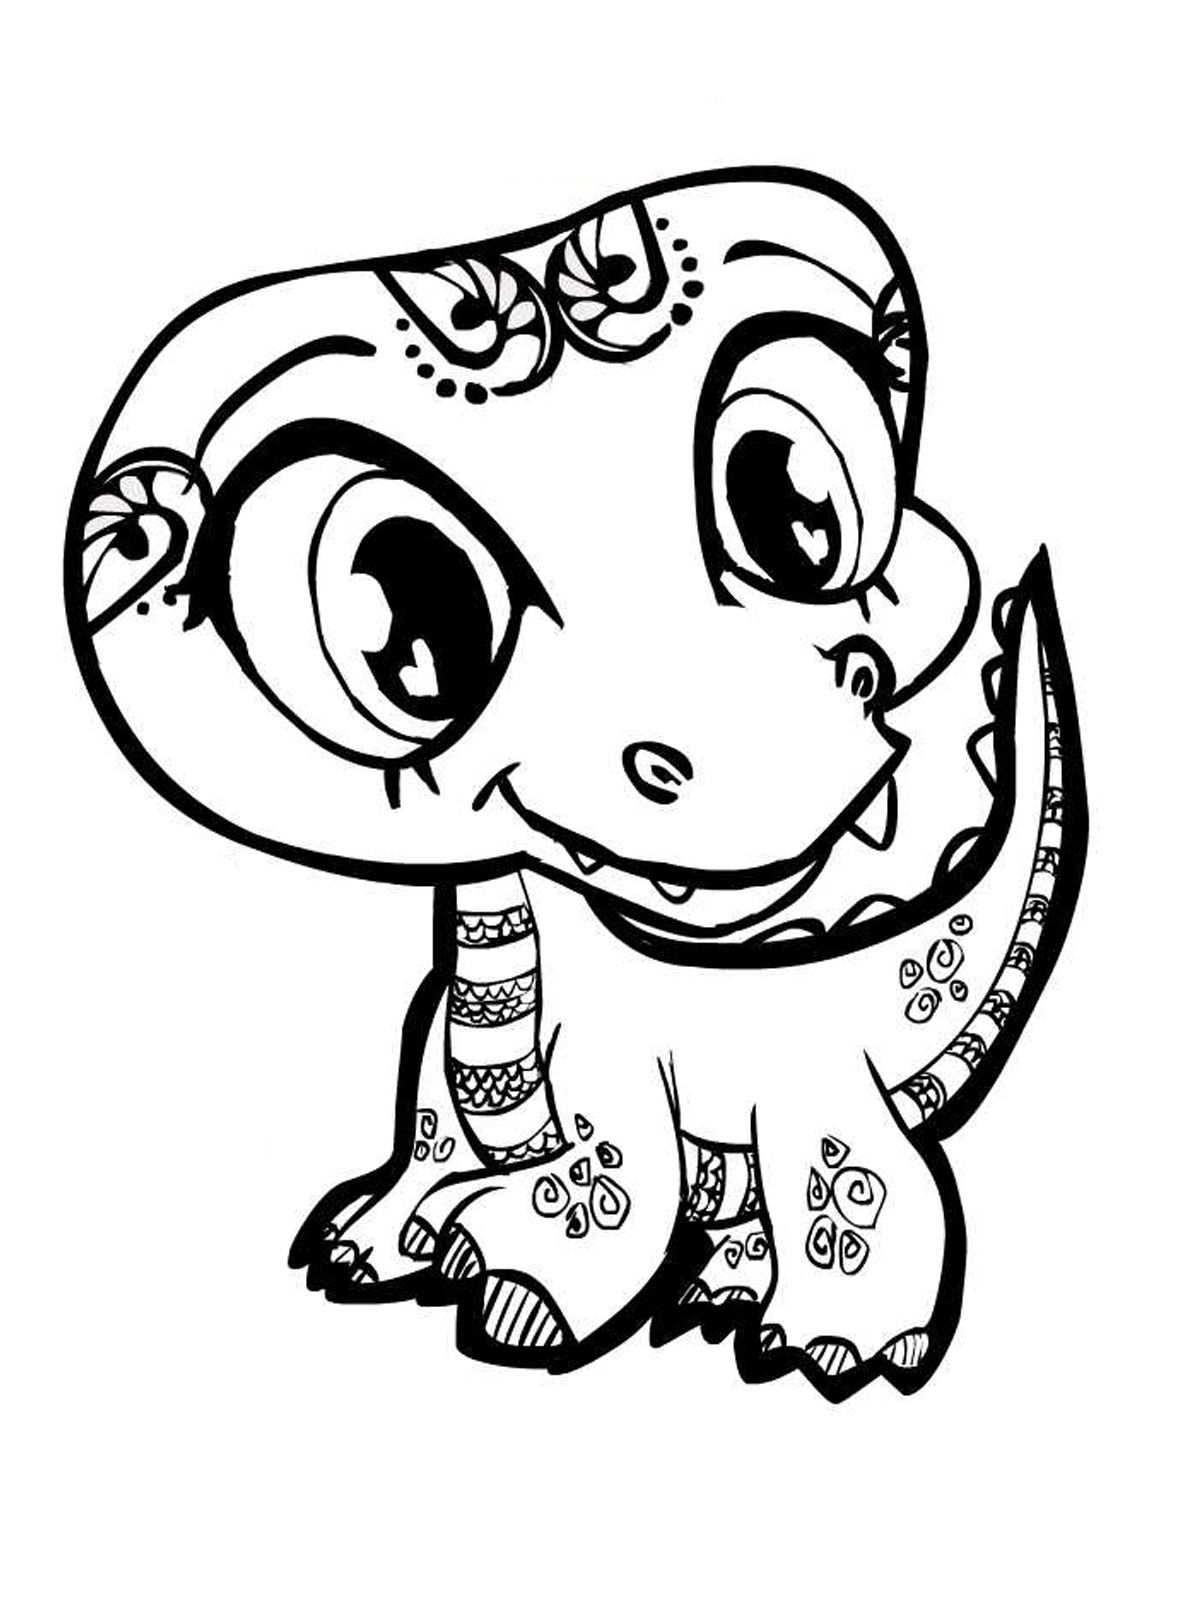 coloring pages of pandas free easy to print panda coloring pages tulamama pandas coloring pages of